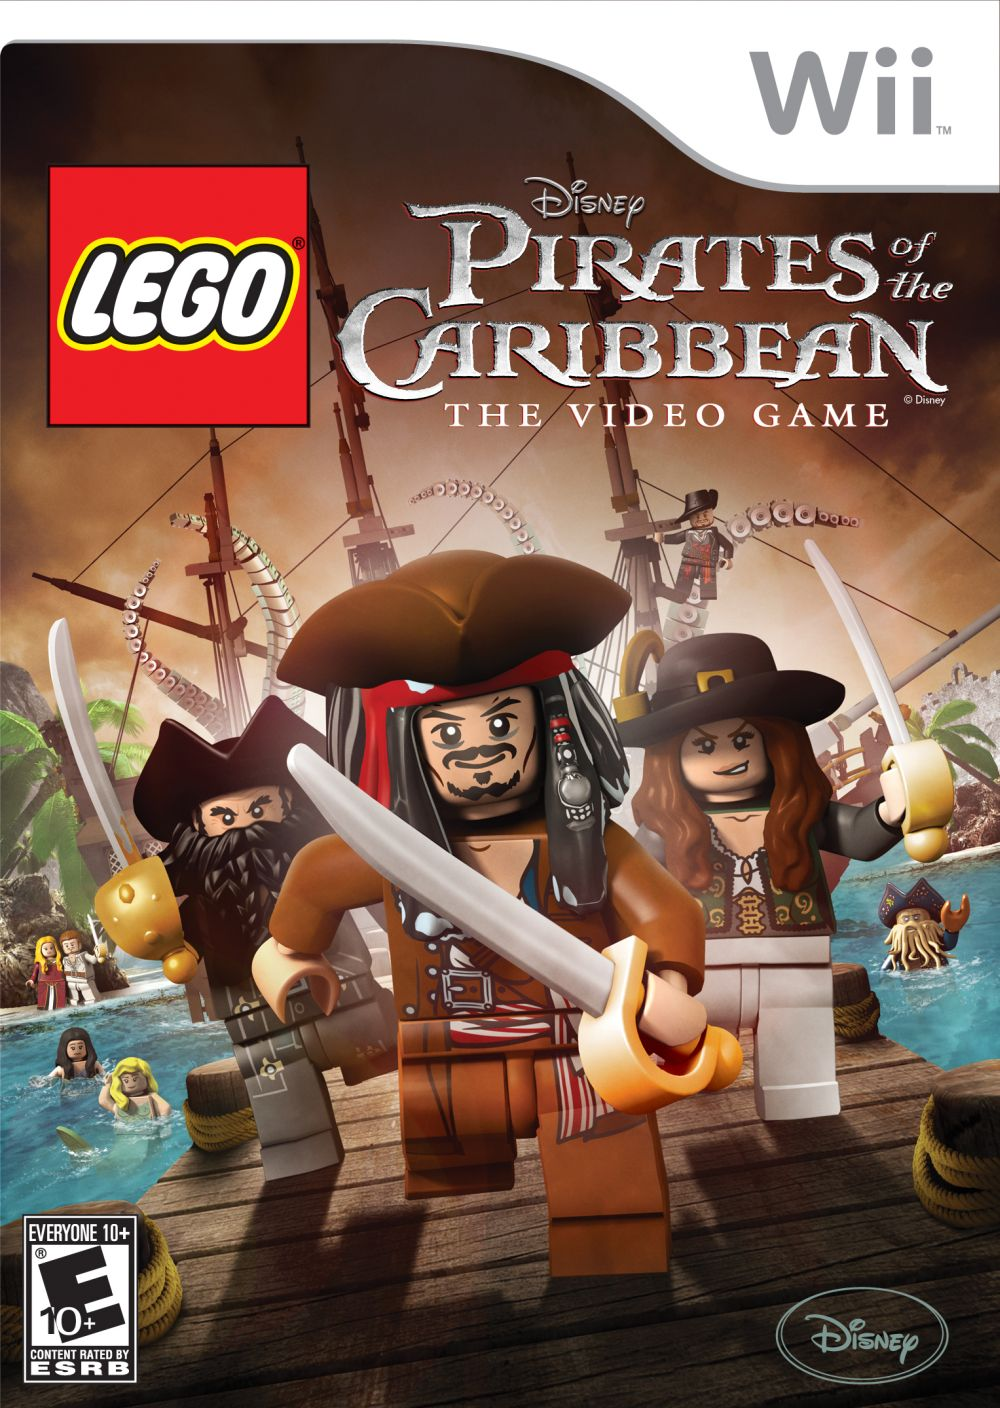 Lego Pirates of the Caribbean: The Video Game (Video Game